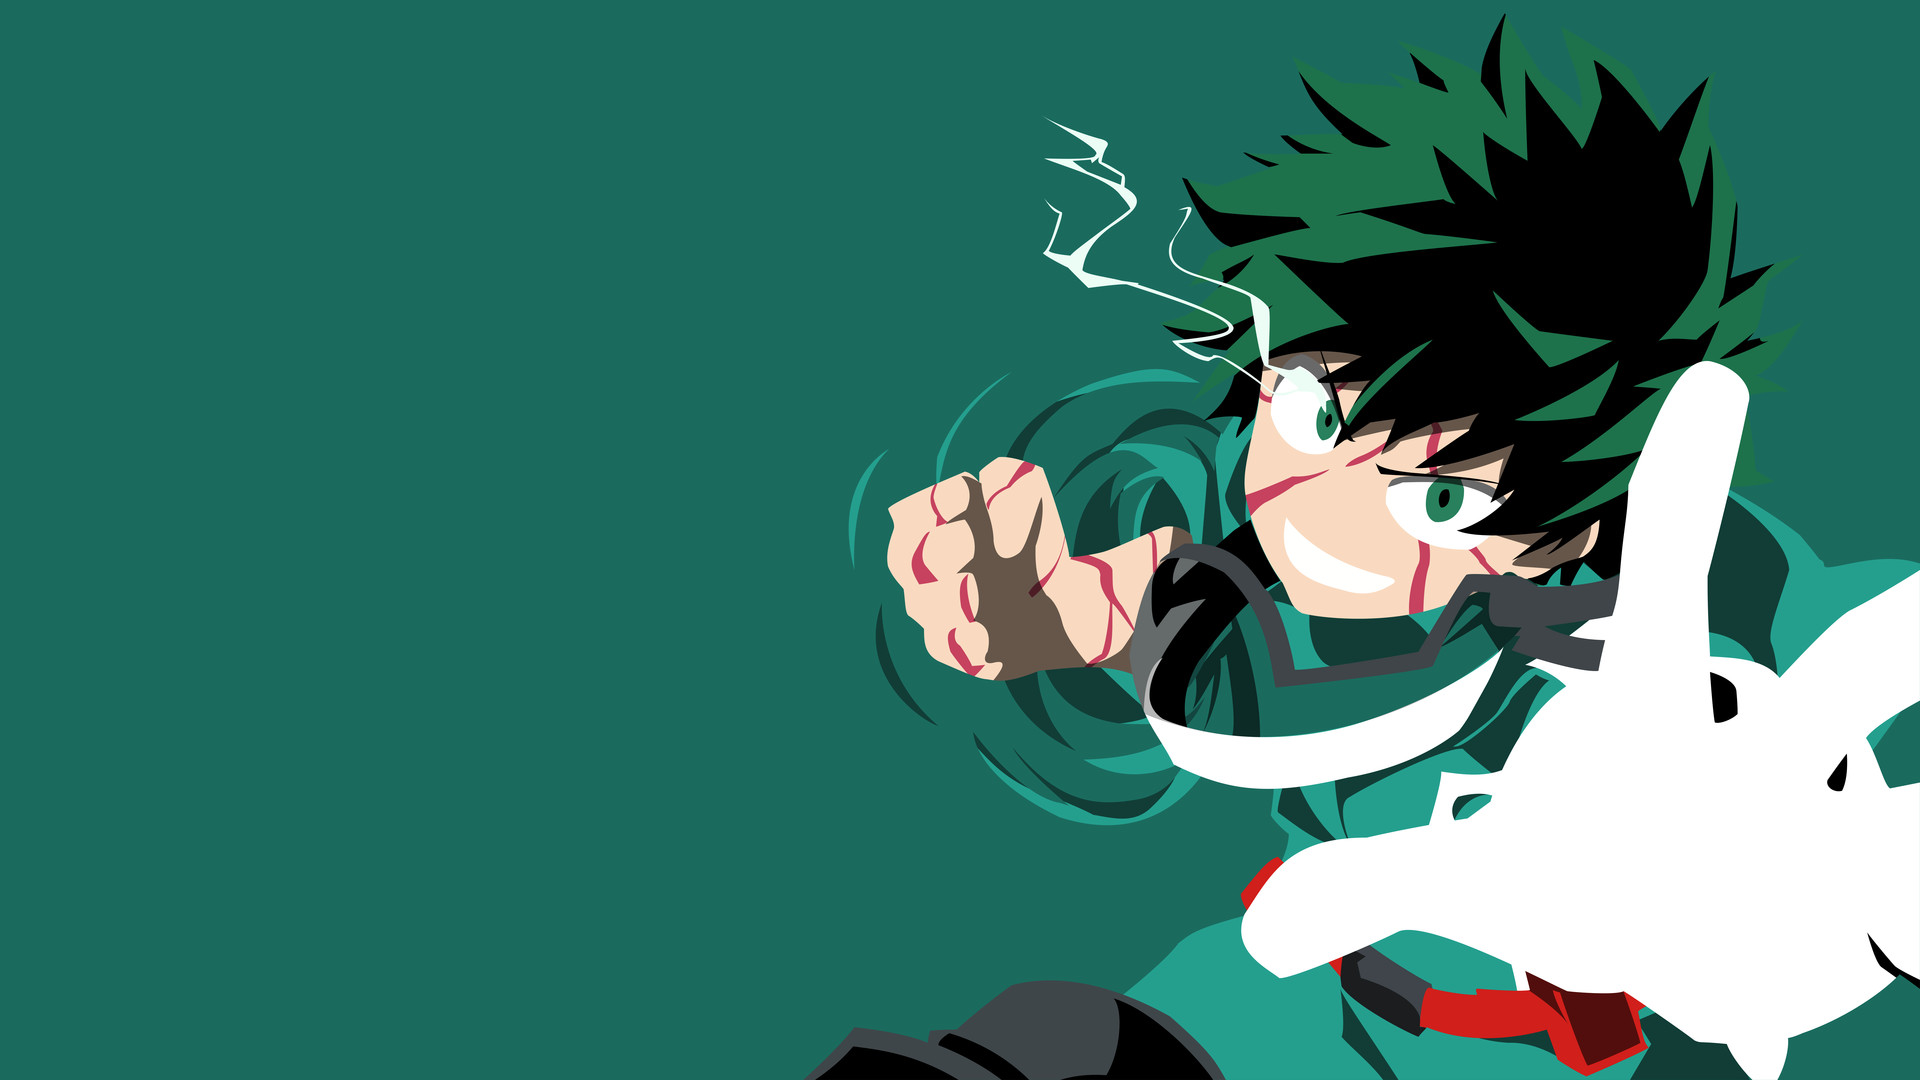 My Hero Academia Chapter 263 Release Date, Spoilers Tomura Shigaraki will get Power-Up to Fight Mirko and Endeavor